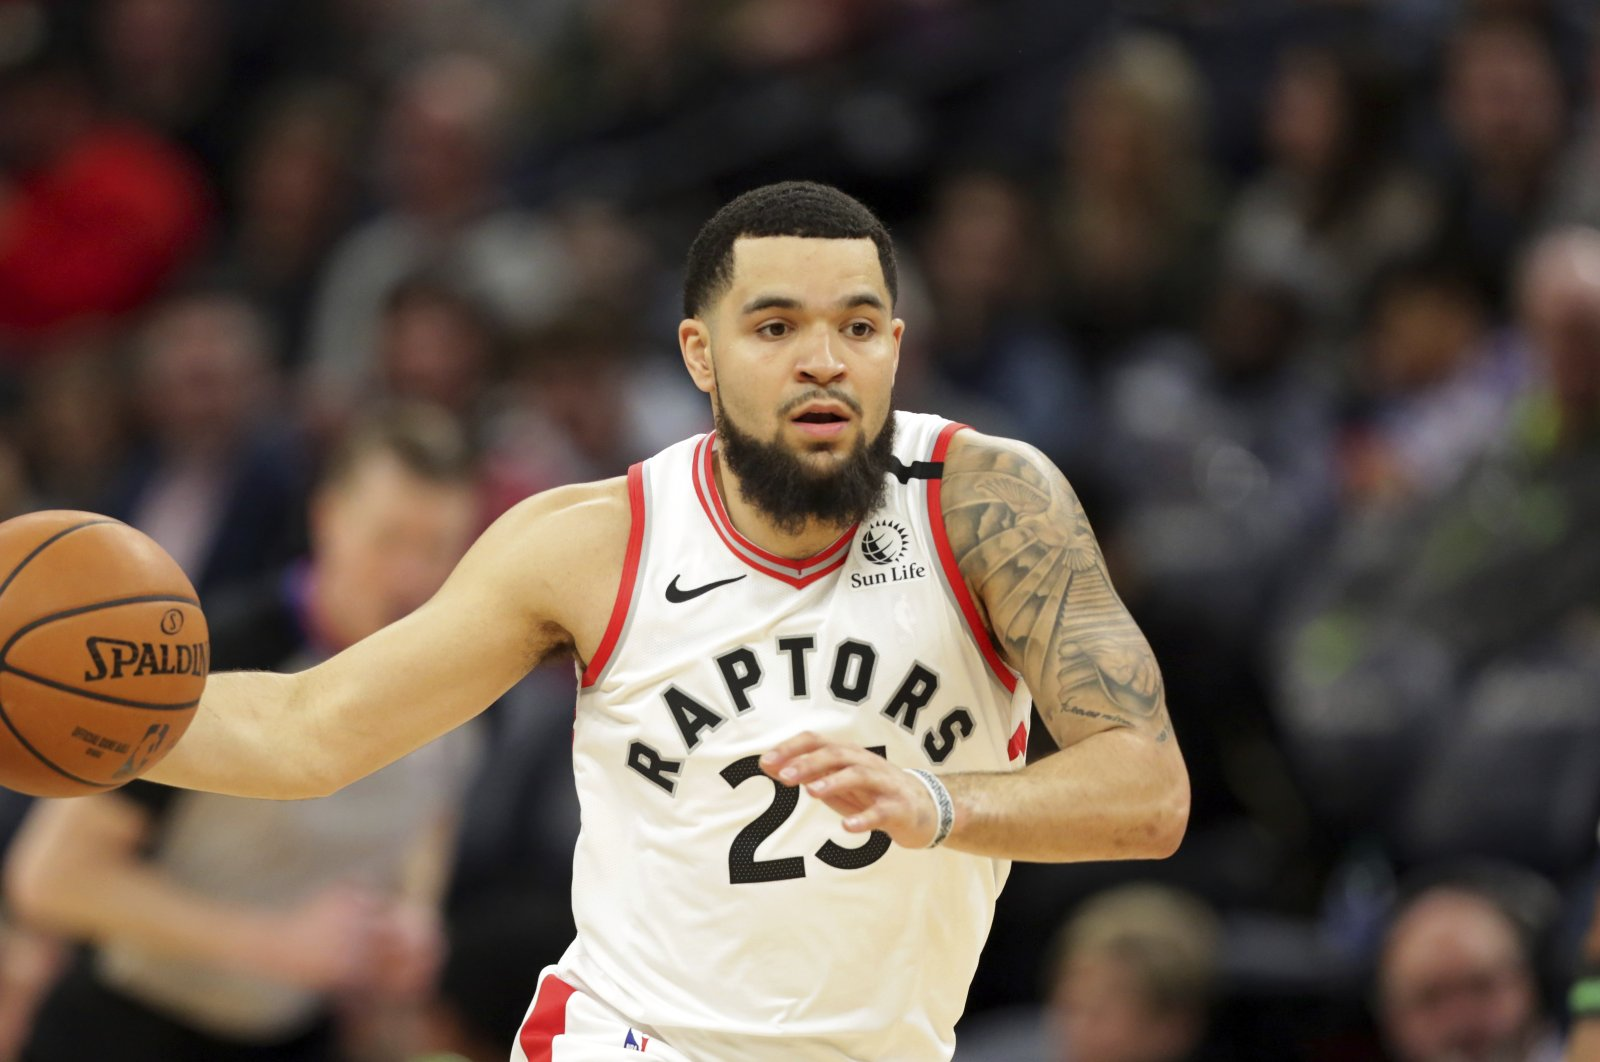 Fred VanVleet plays during an NBA game in Minneapolis, Minnesota, Jan. 18, 2020. (AP Photo)